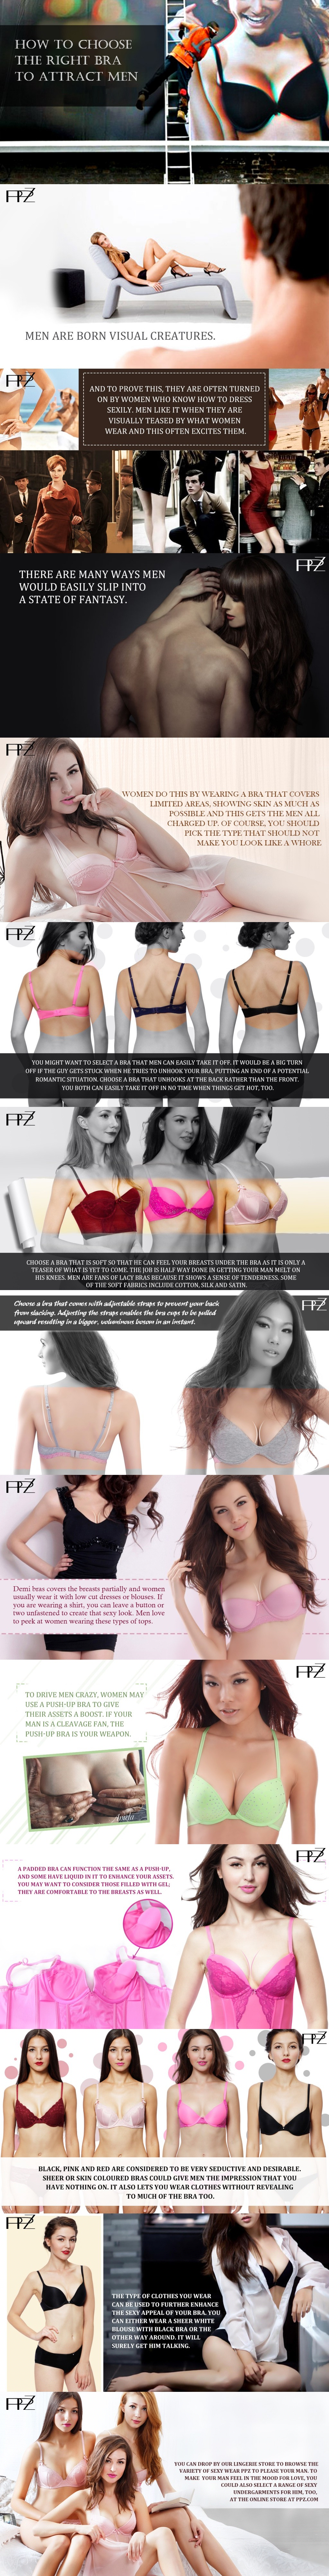 How to Choose the Right Bra to Attract Men